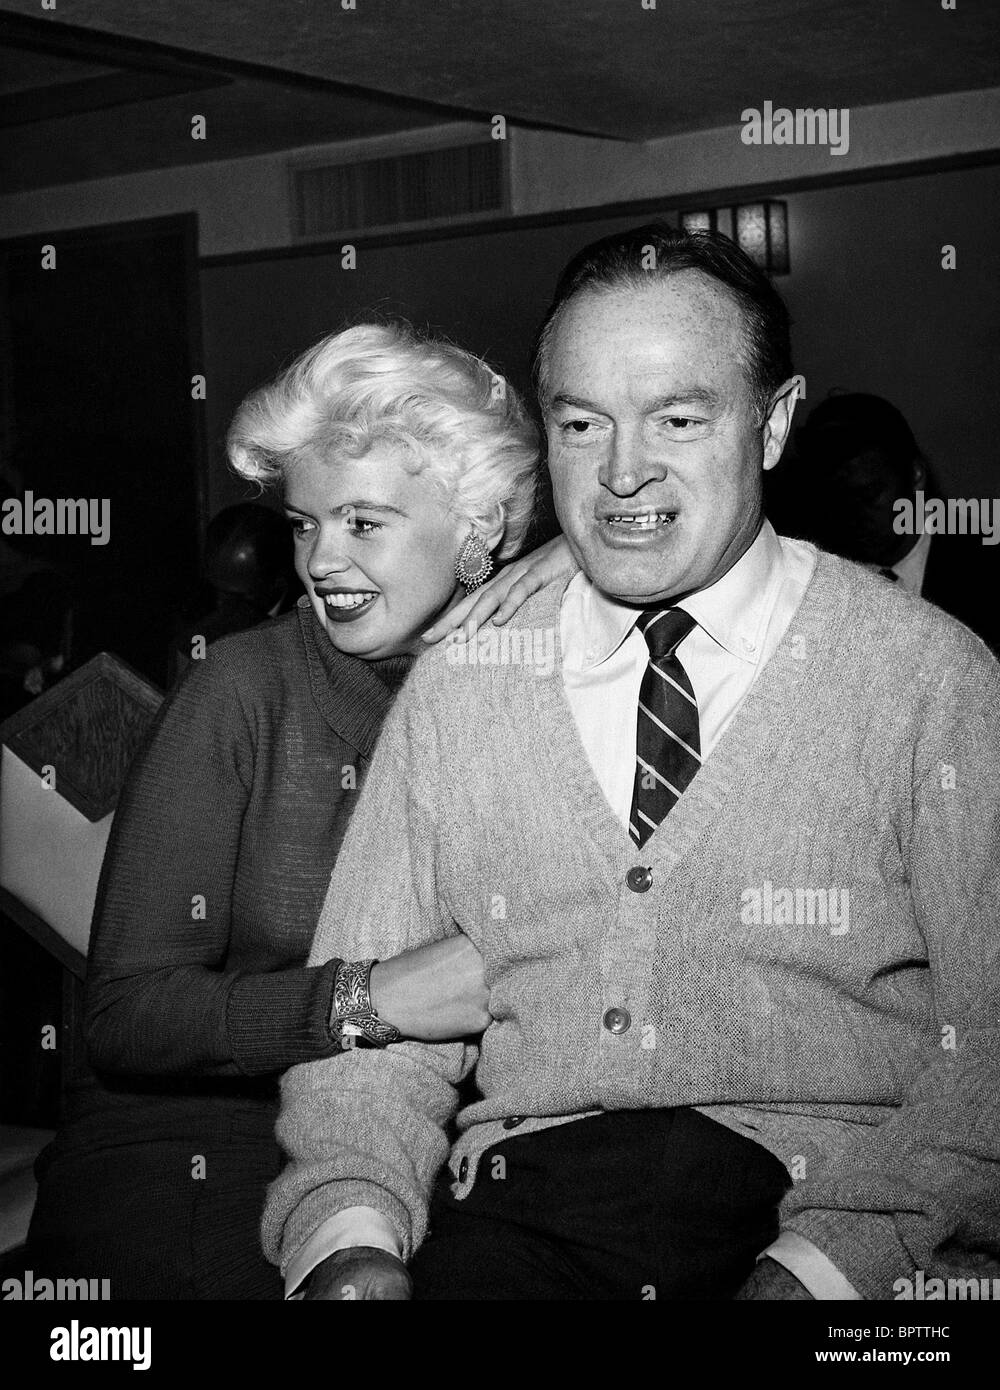 Jayne mansfield bob hope actor with actress 1957 stock image